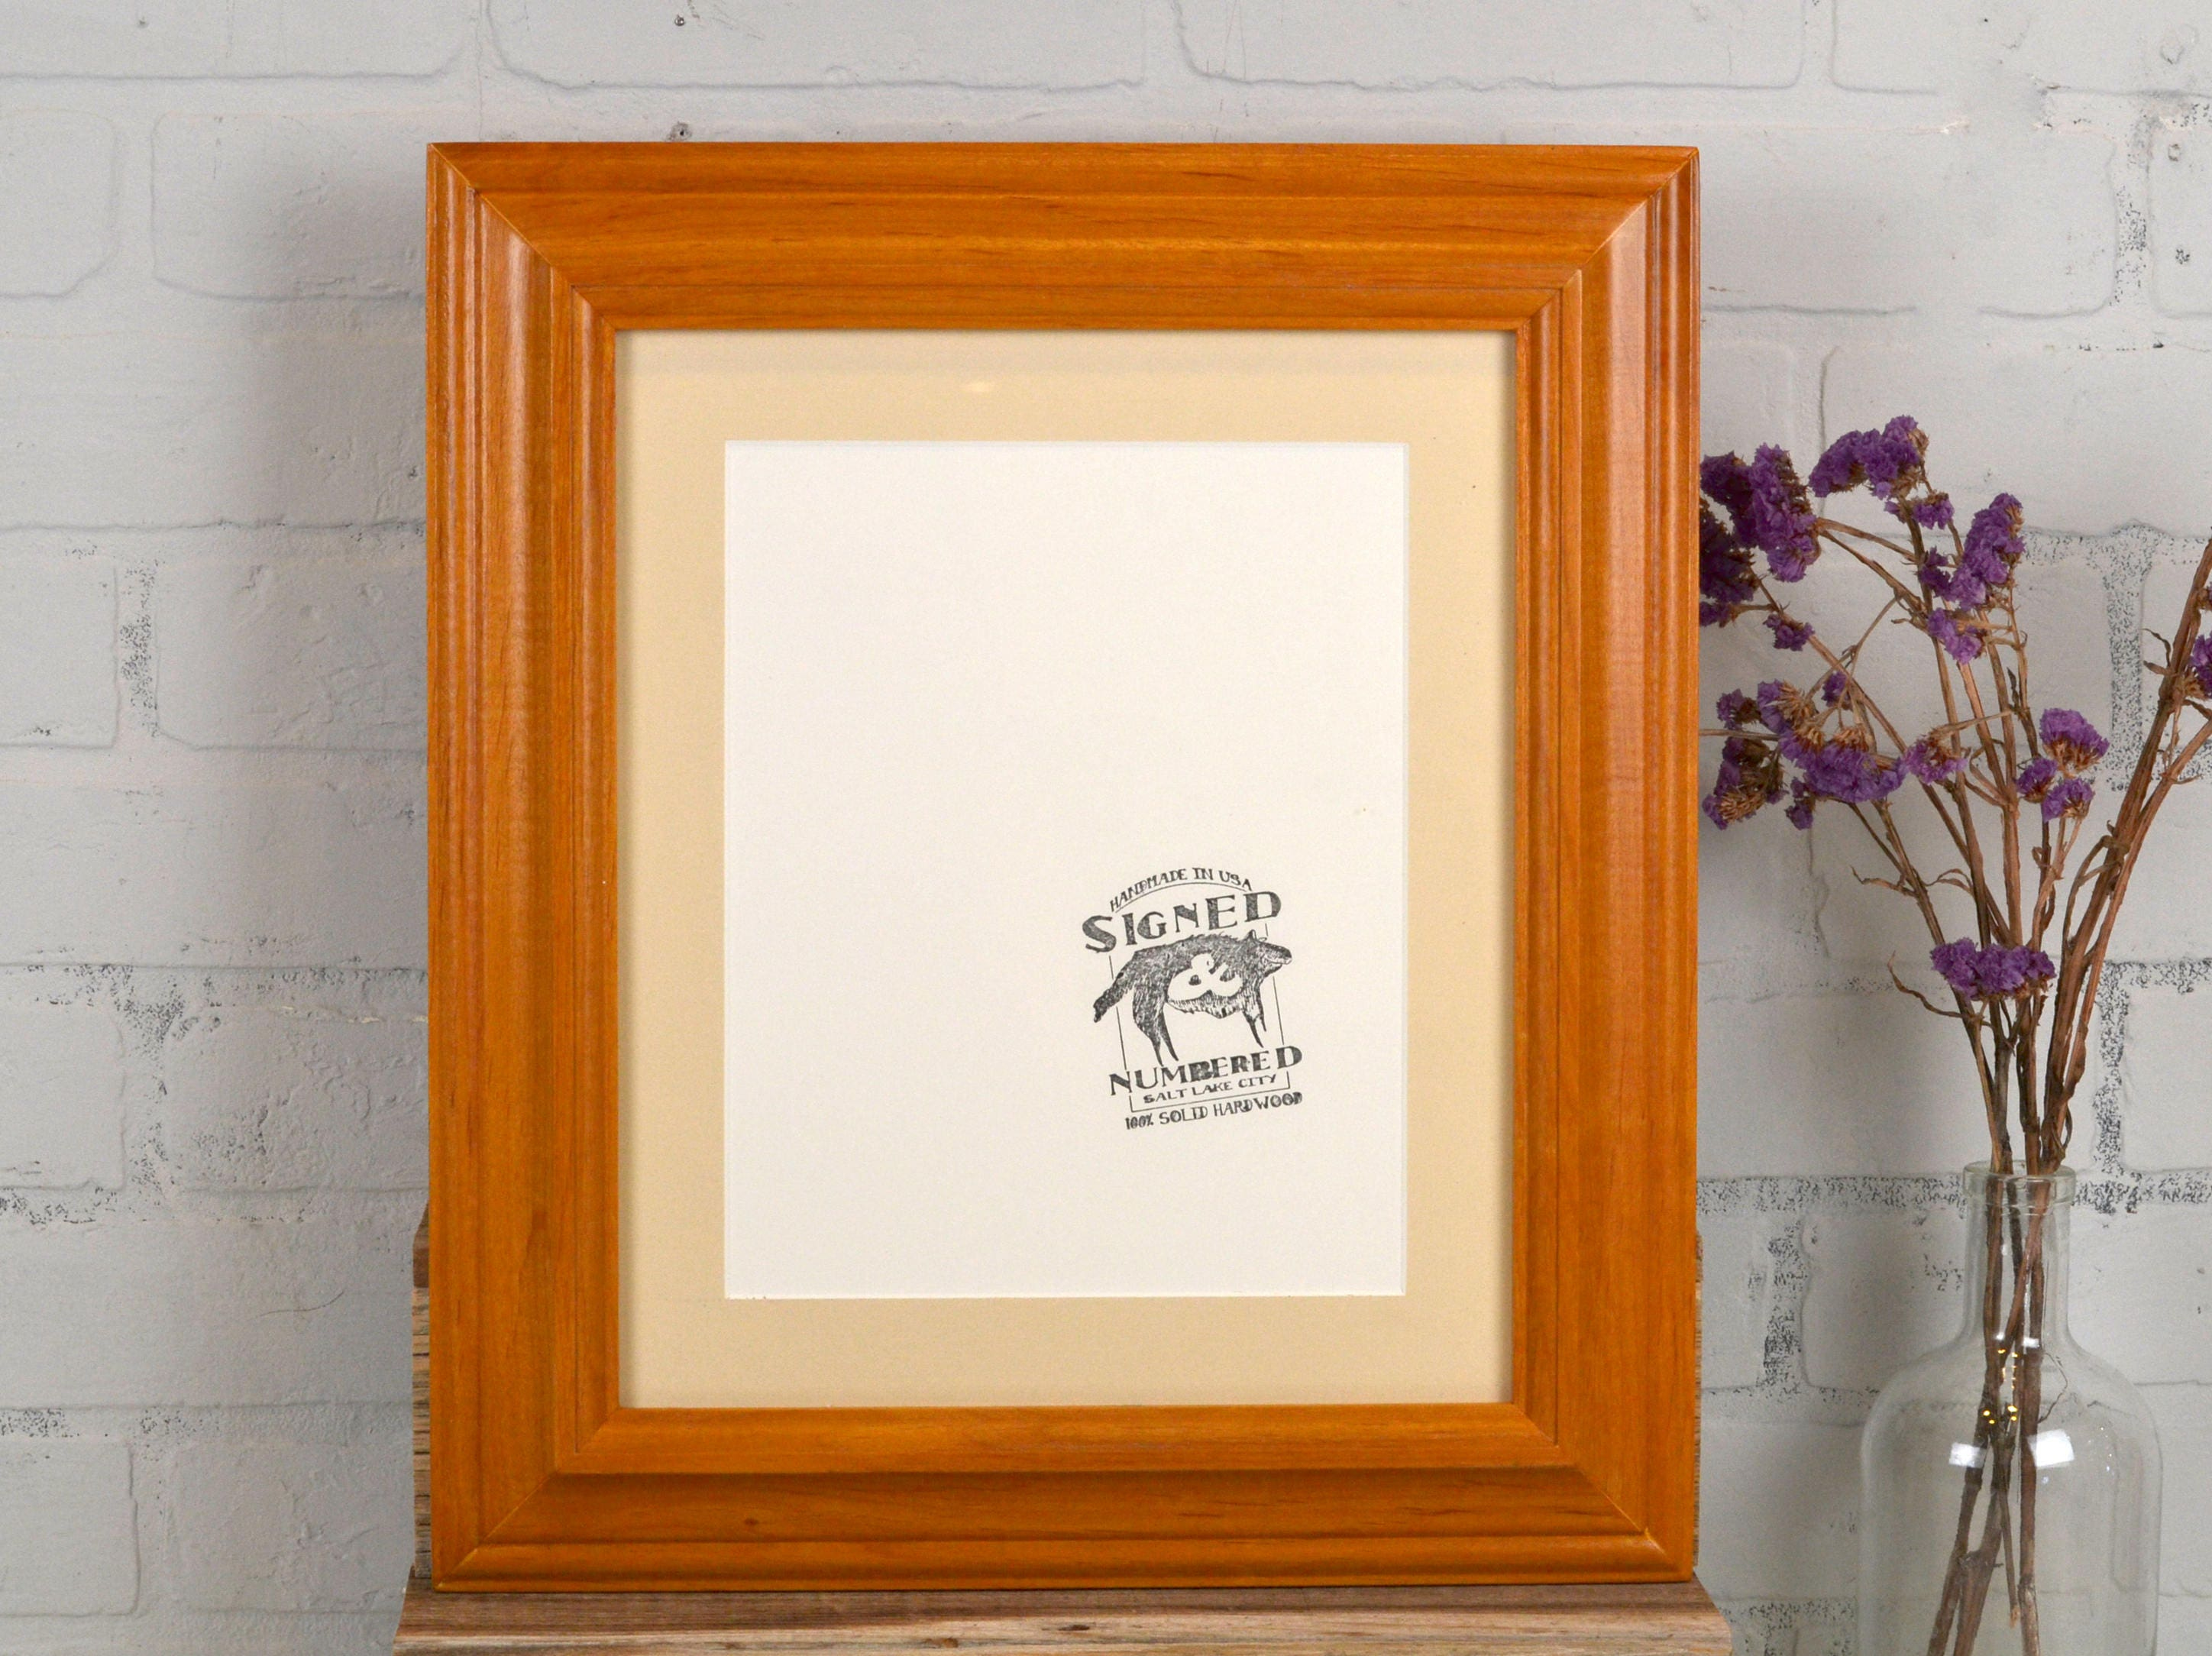 Handmade 11x13 Quot Picture Frame In Mulder Style With Solid